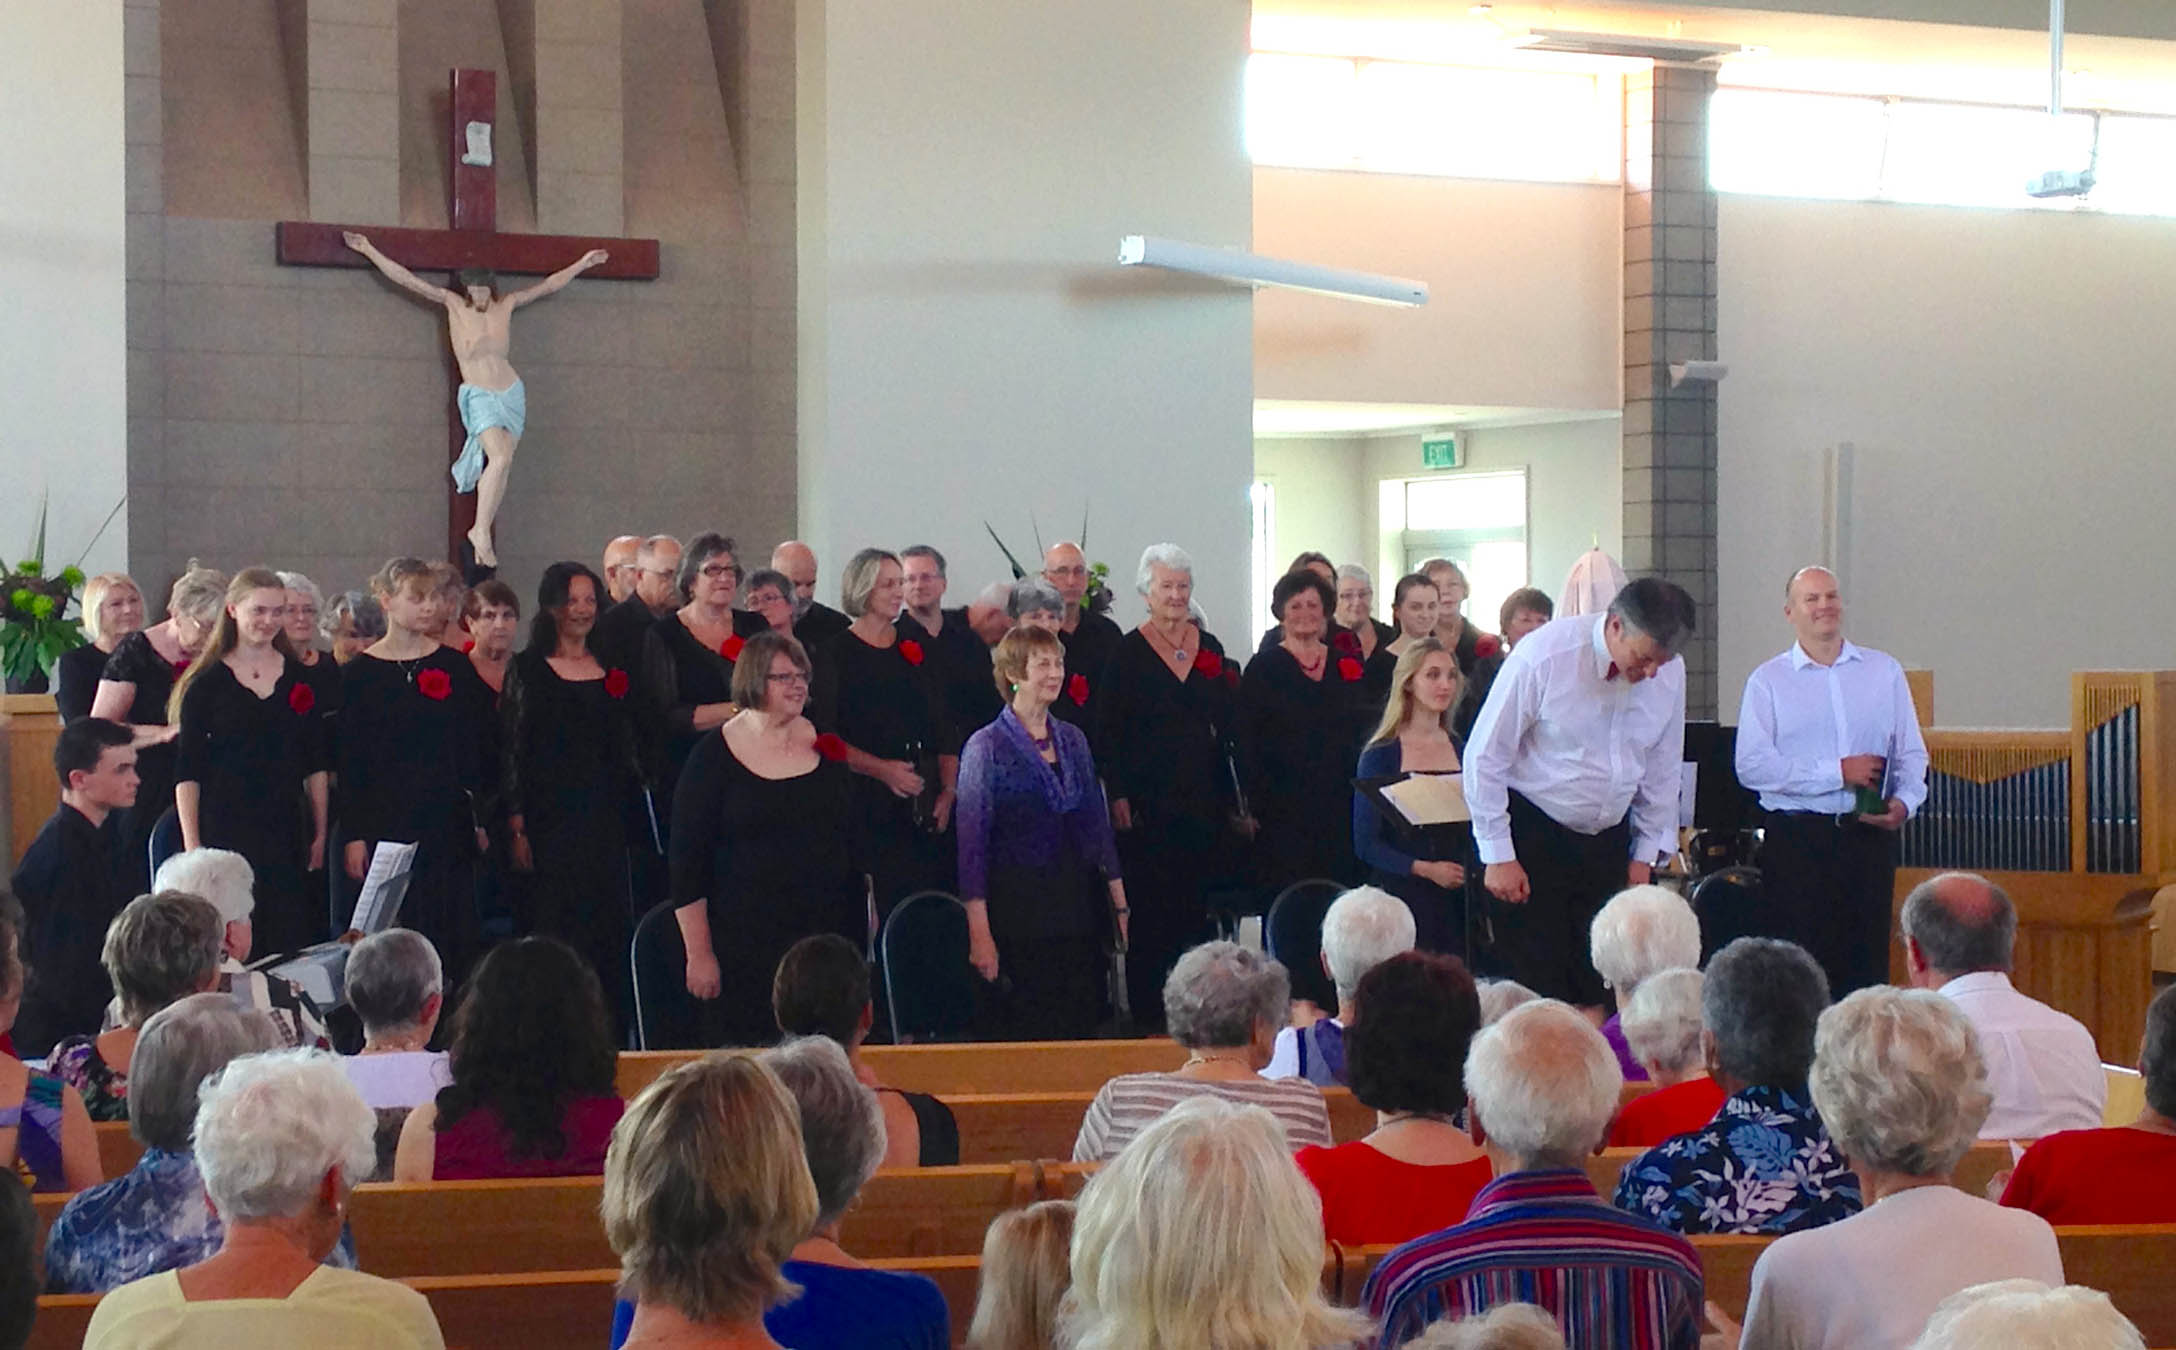 Franklin_Community_Choir_bows_20131124_Pukekohe_NZ.jpg